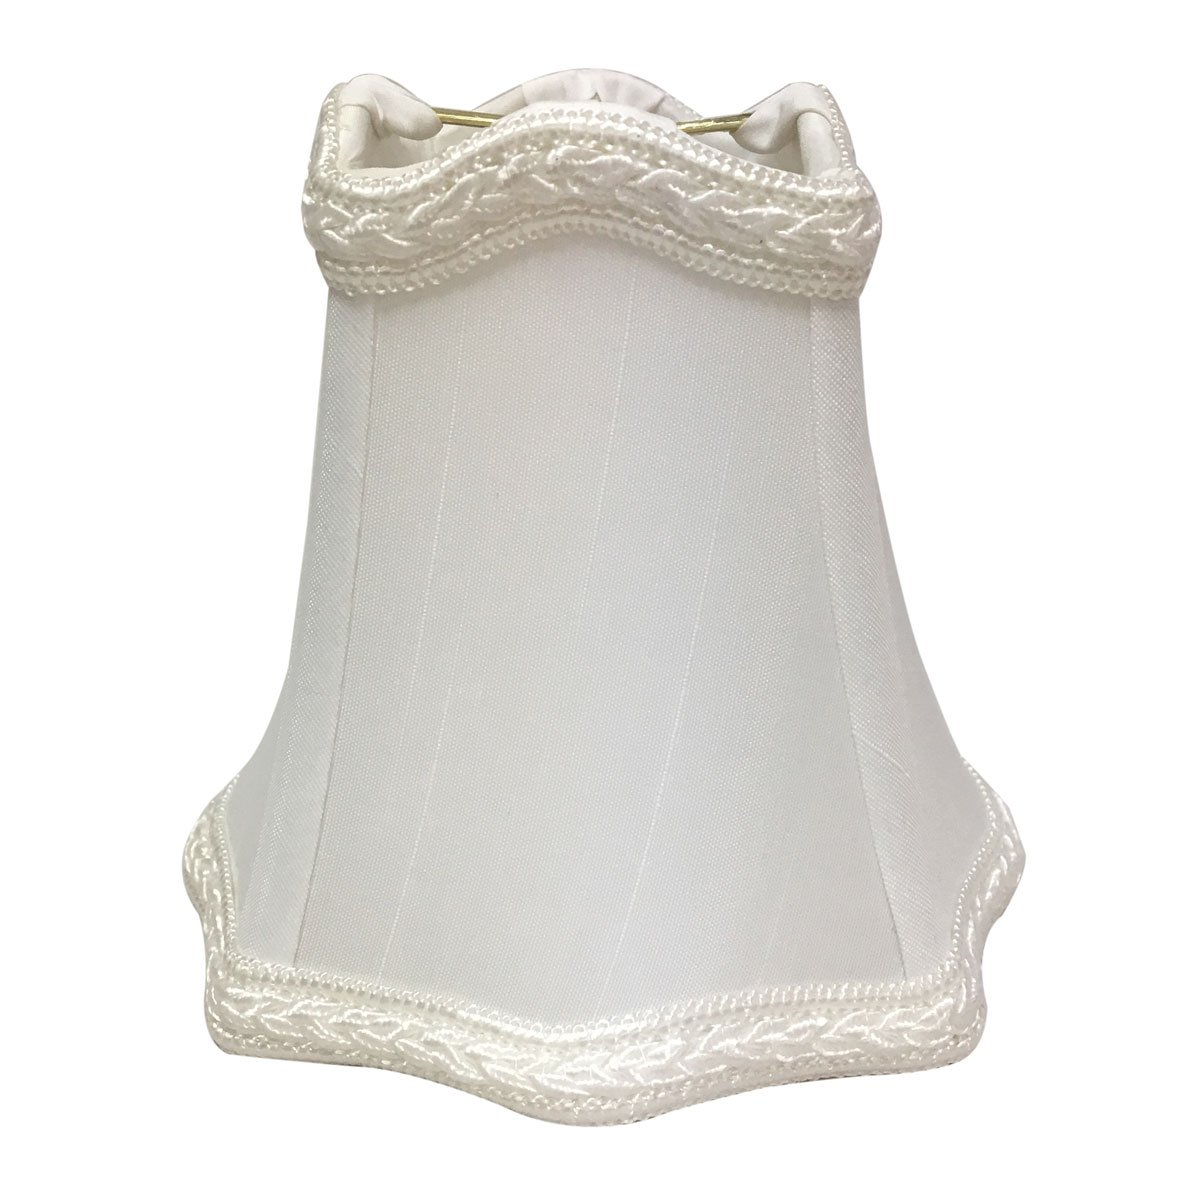 Royal Designs White with Decorative Trim Hexagon Empire Chandelier Lamp Shade, 2.5'' x 5'' x 4.5'', Clip On by Royal Designs, Inc